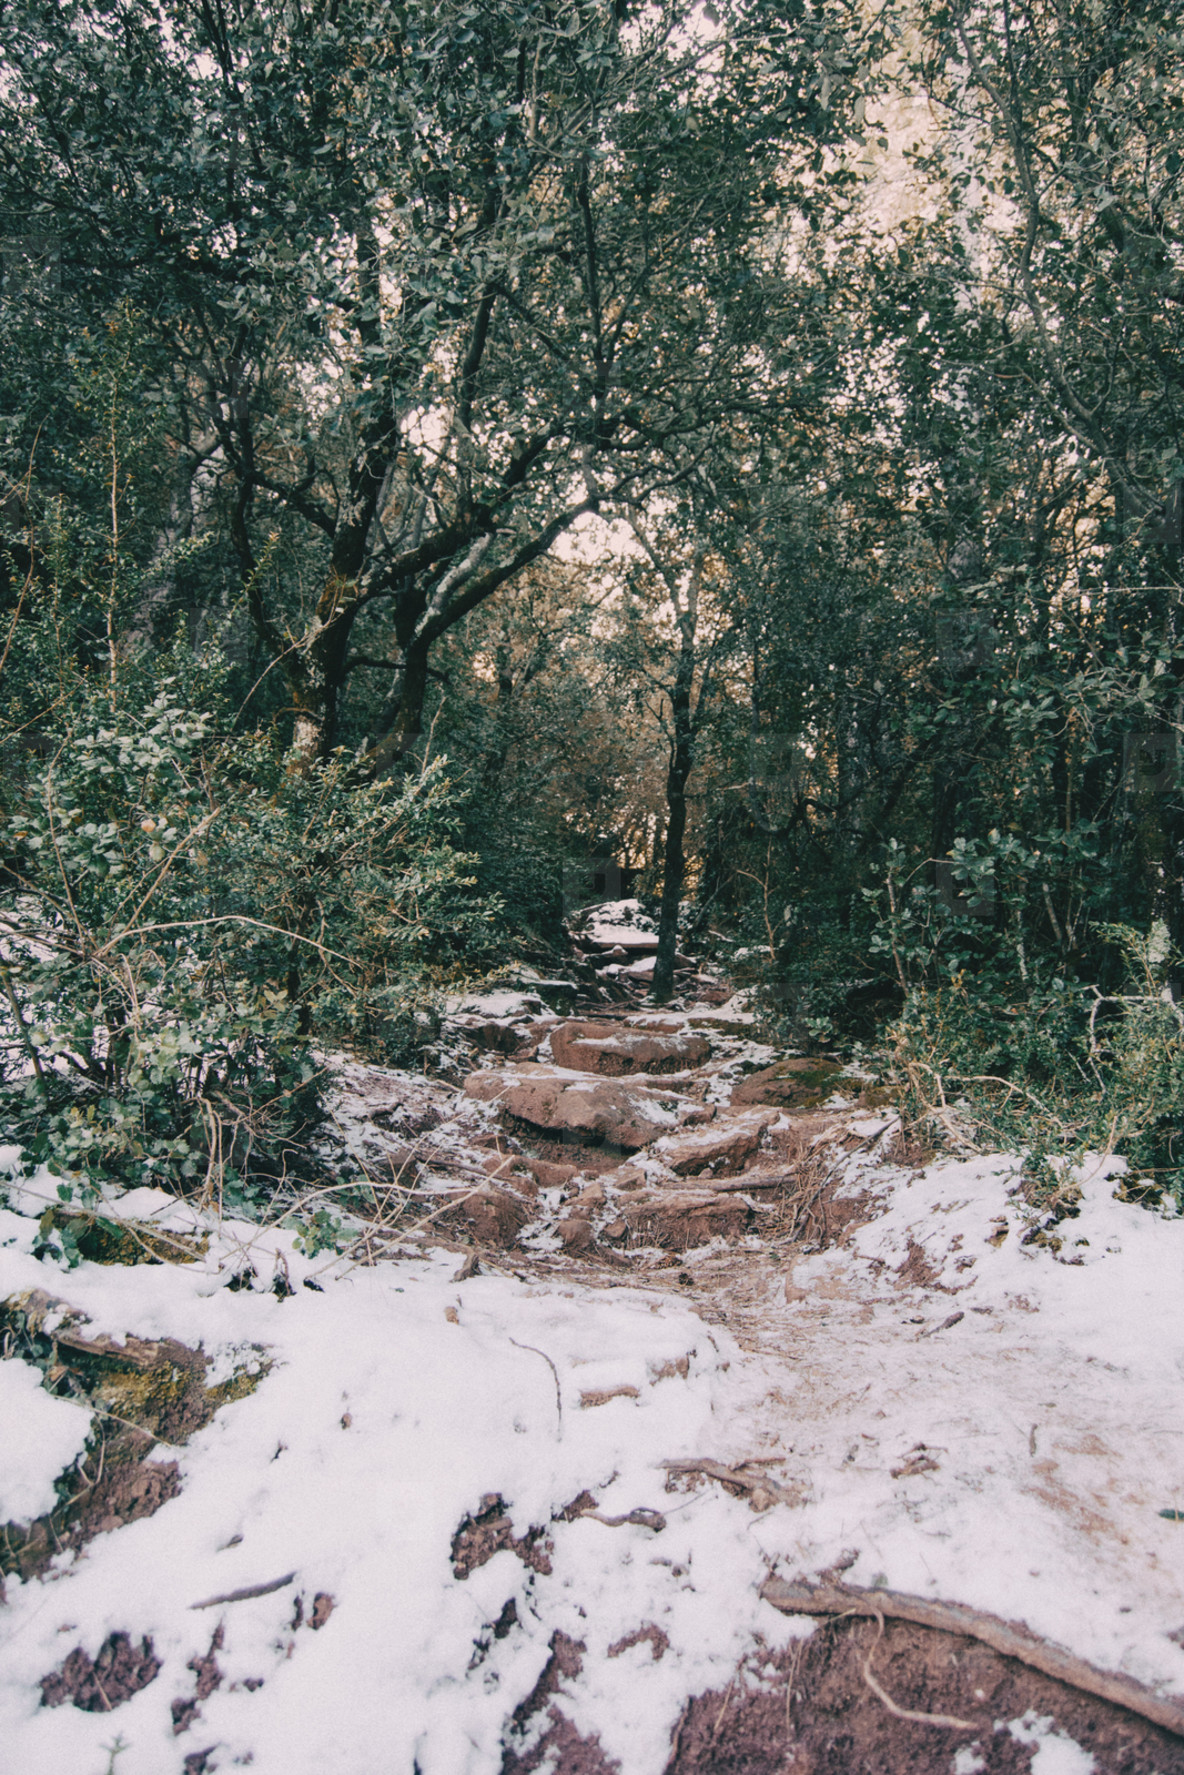 Snowy mountain trail